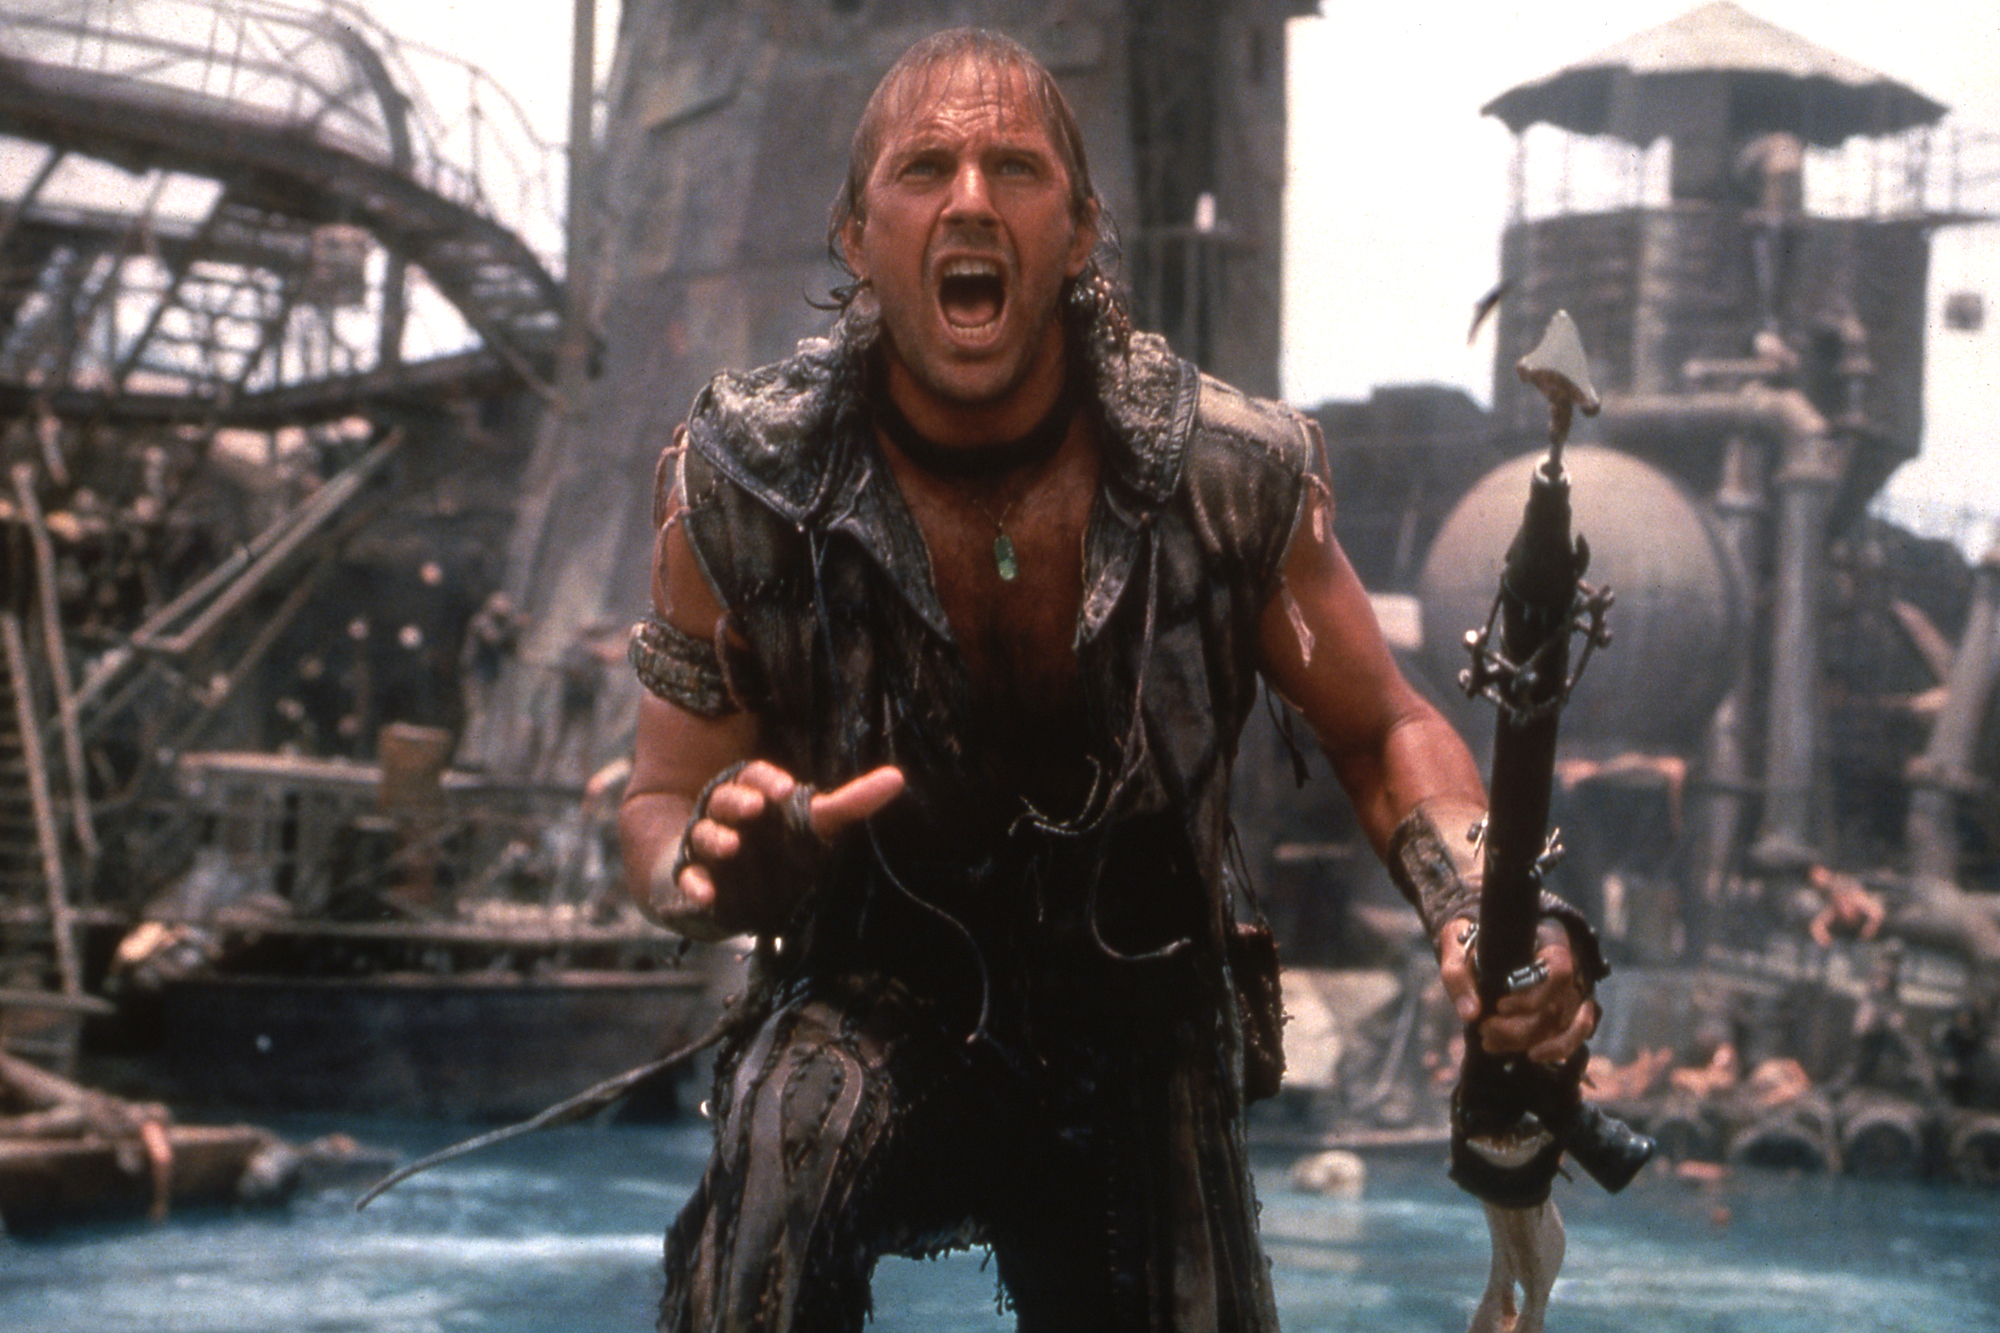 WATERWORLD, Kevin Costner, 1995.